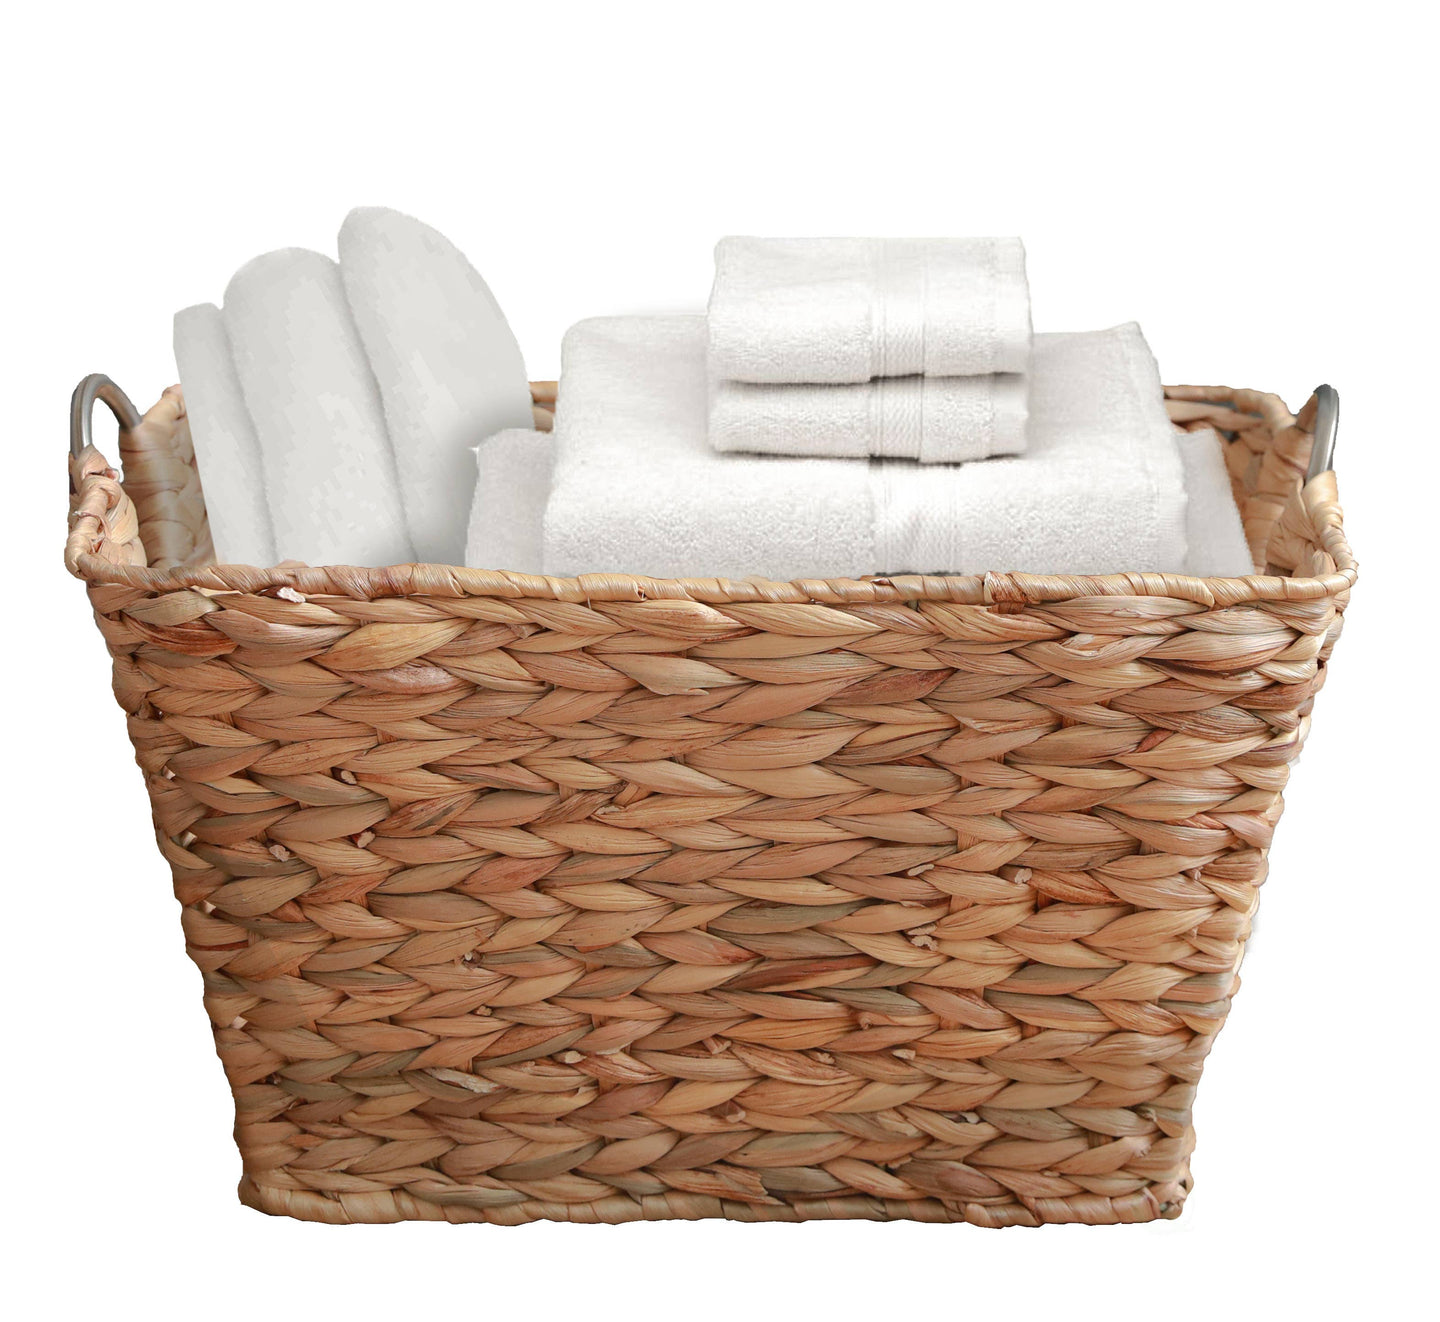 Vintiquewise - Hyacinth Wicker Large Square Laundry Basket with Handles